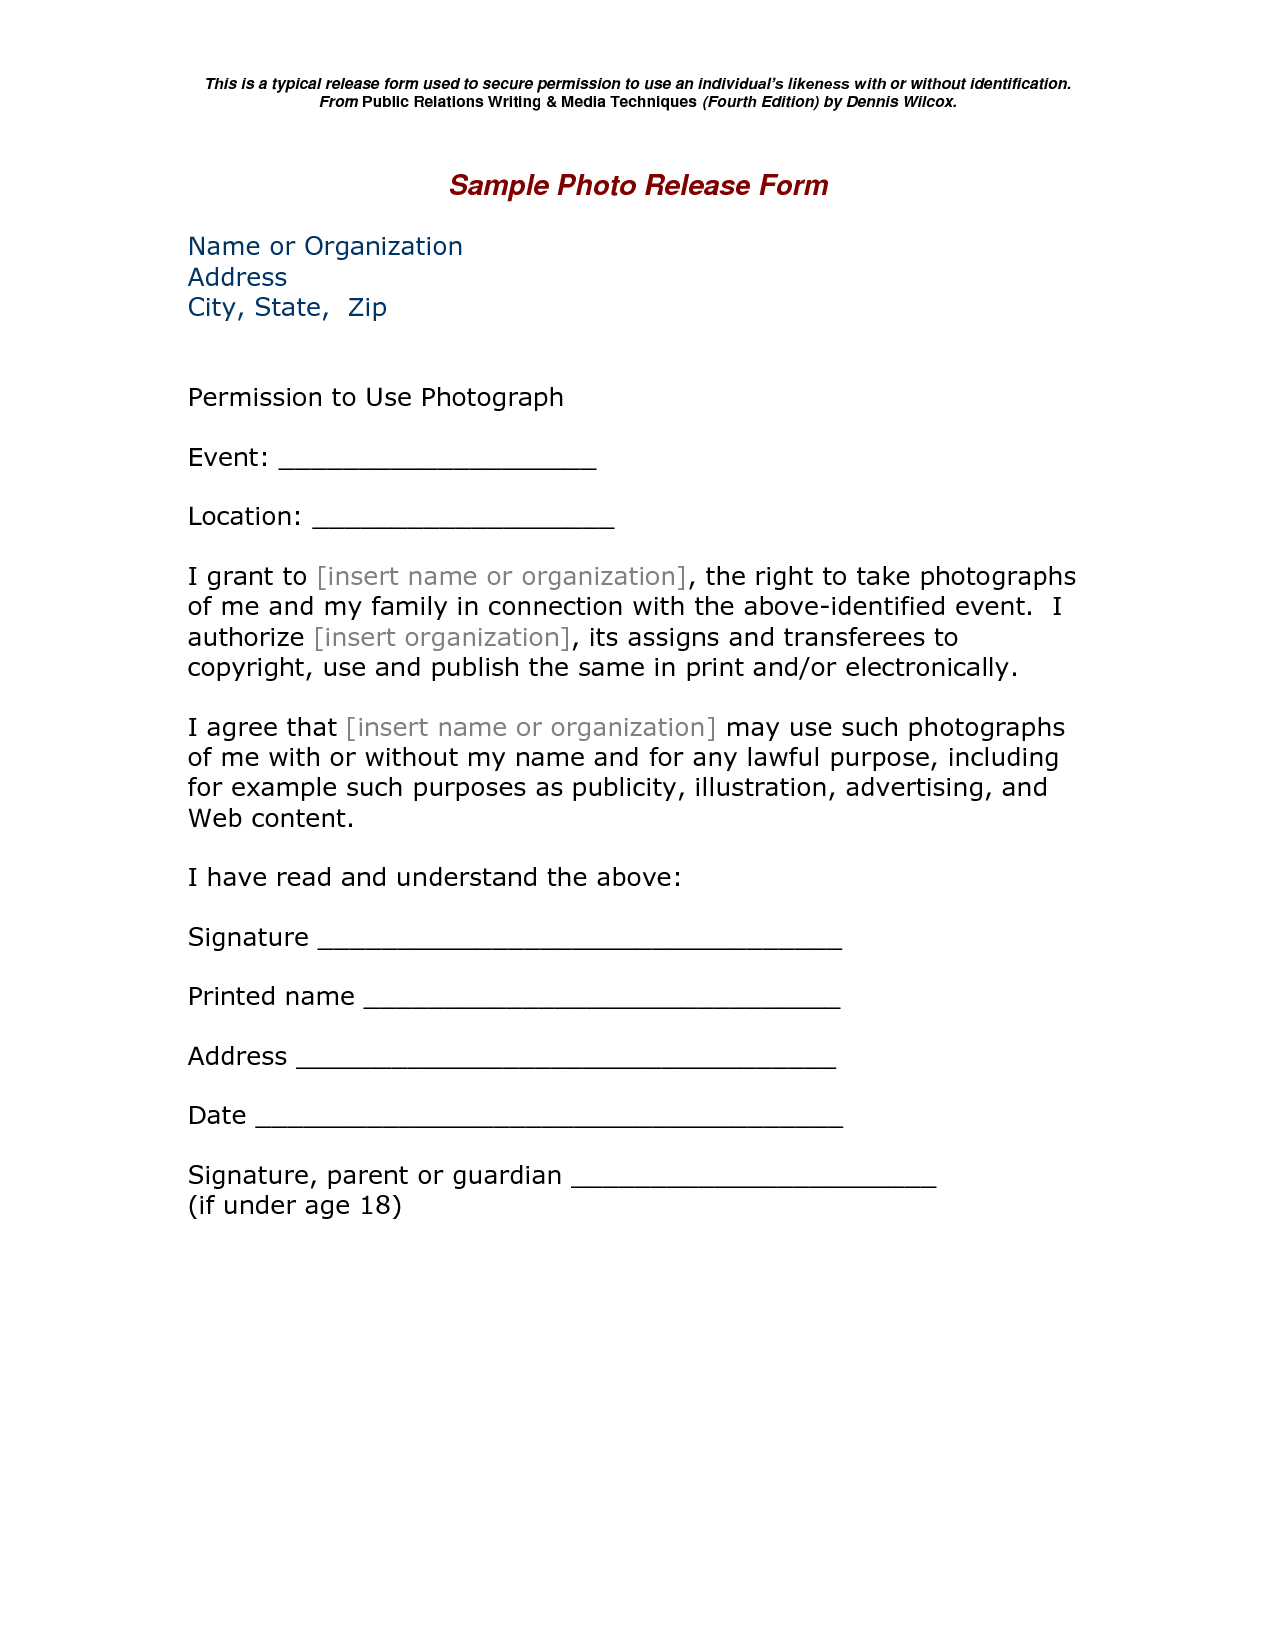 Great pography copyright release form images release for Photographer copyright release form template